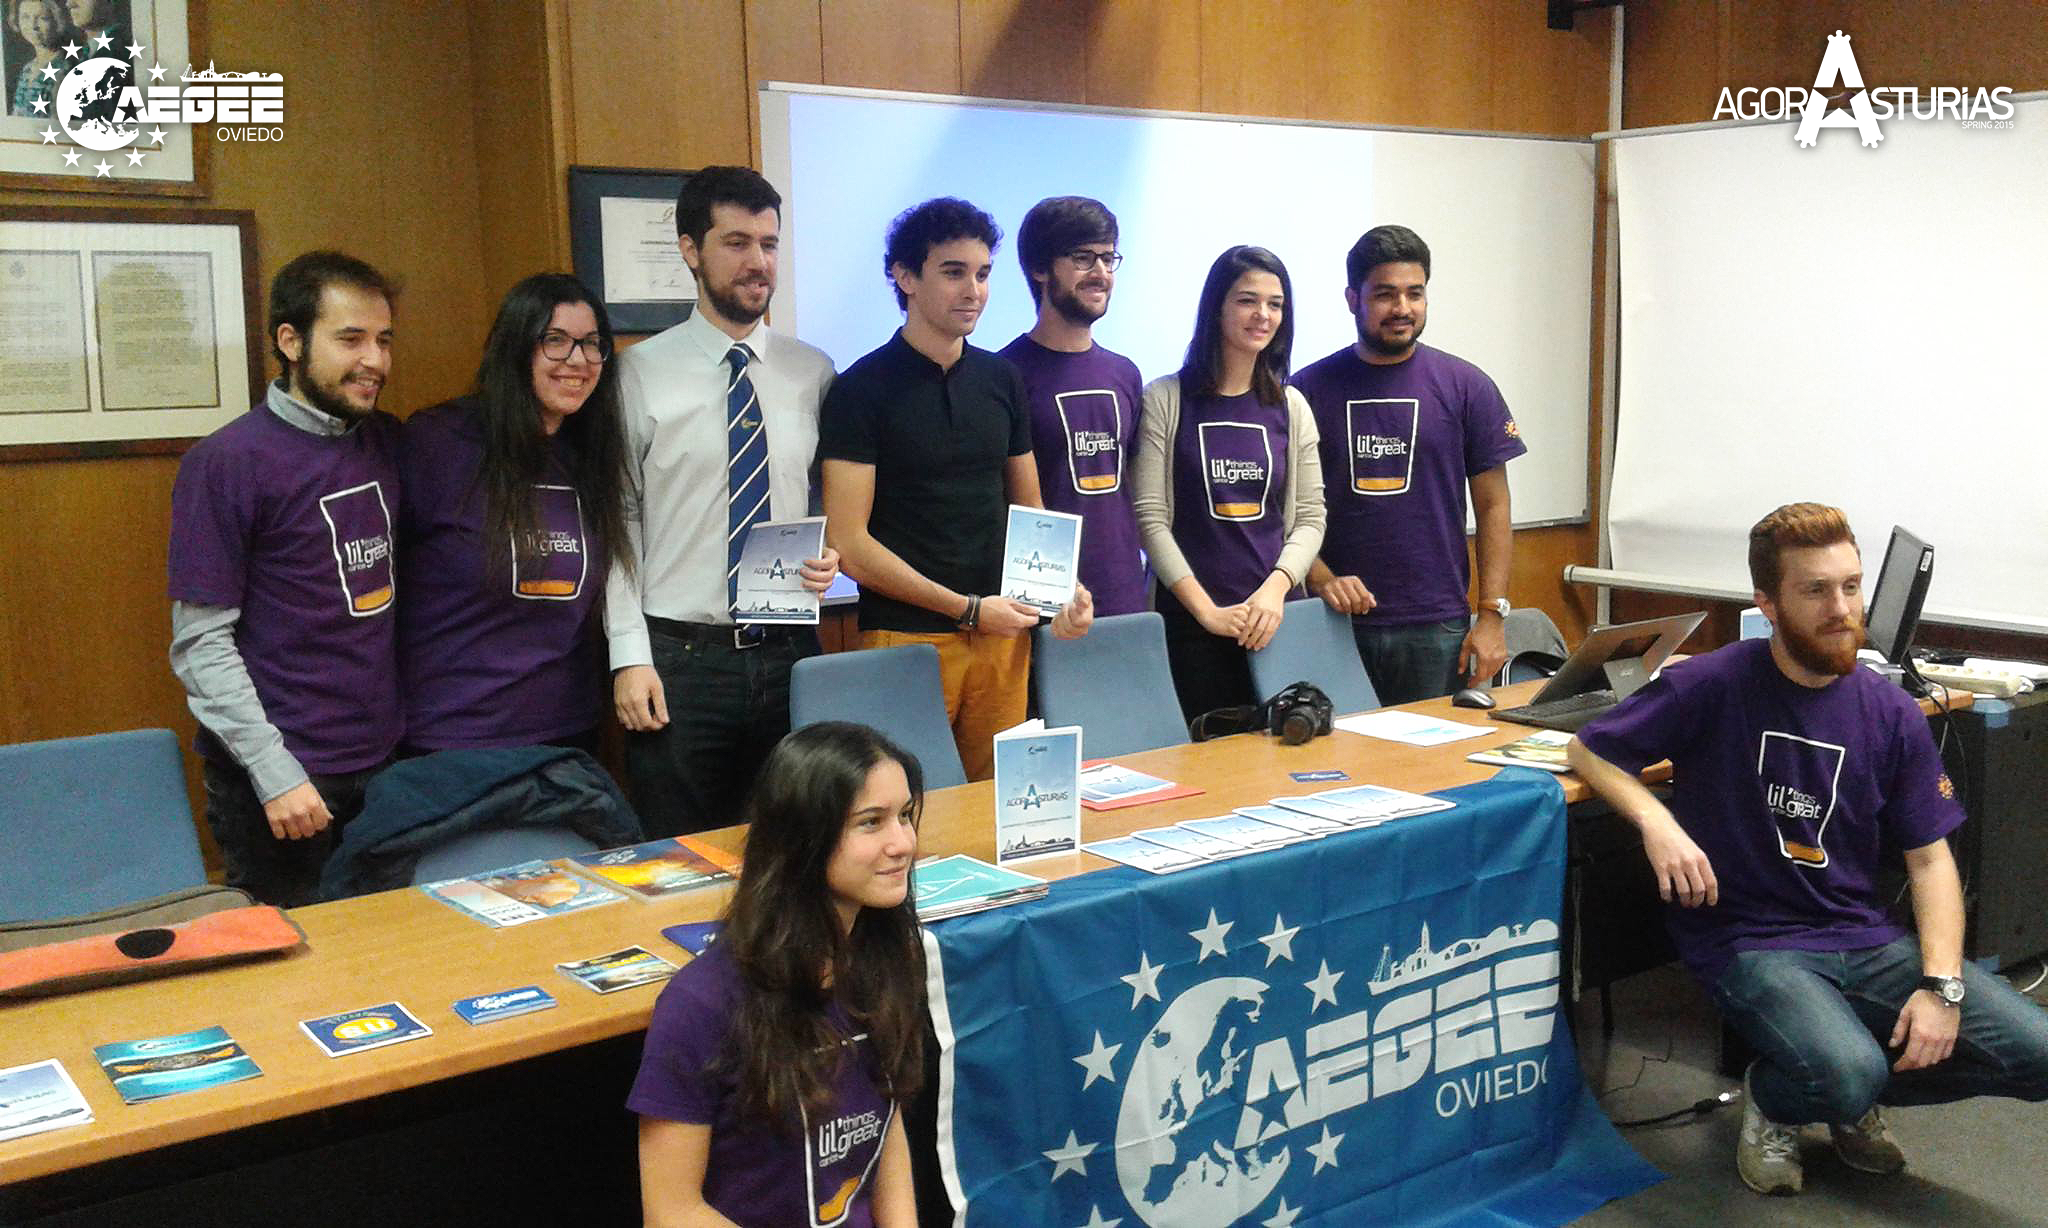 AEGEE-Oviedo gets ready for an unforgettable Agora in Asturias